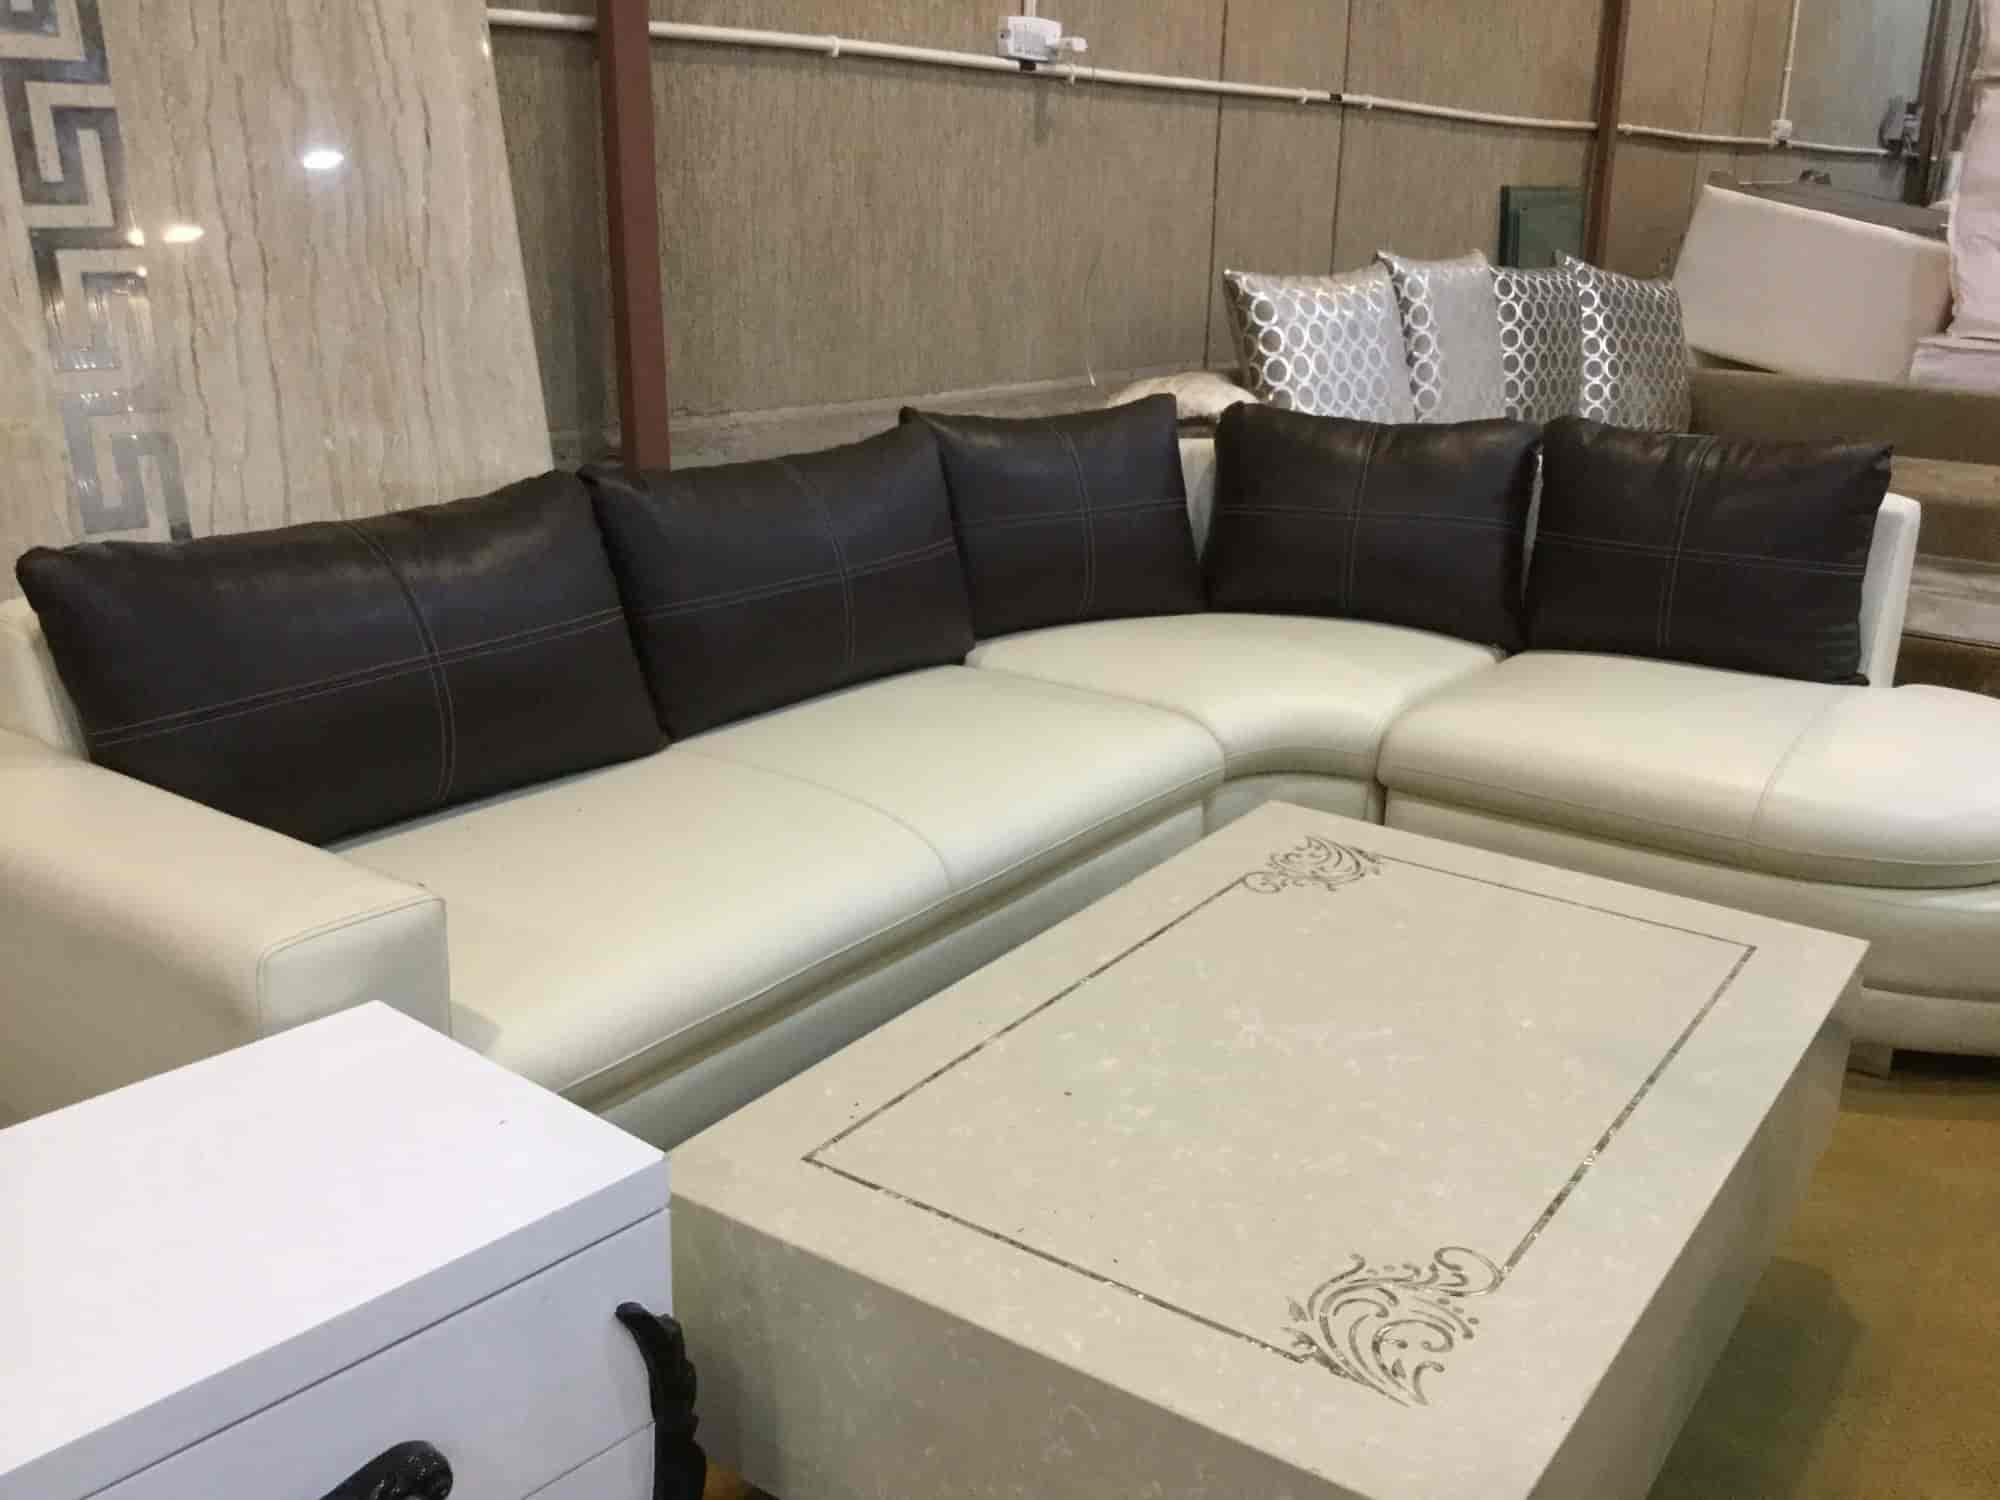 Zurich furniture furnishings baltana furniture dealers in chandigarh justdial